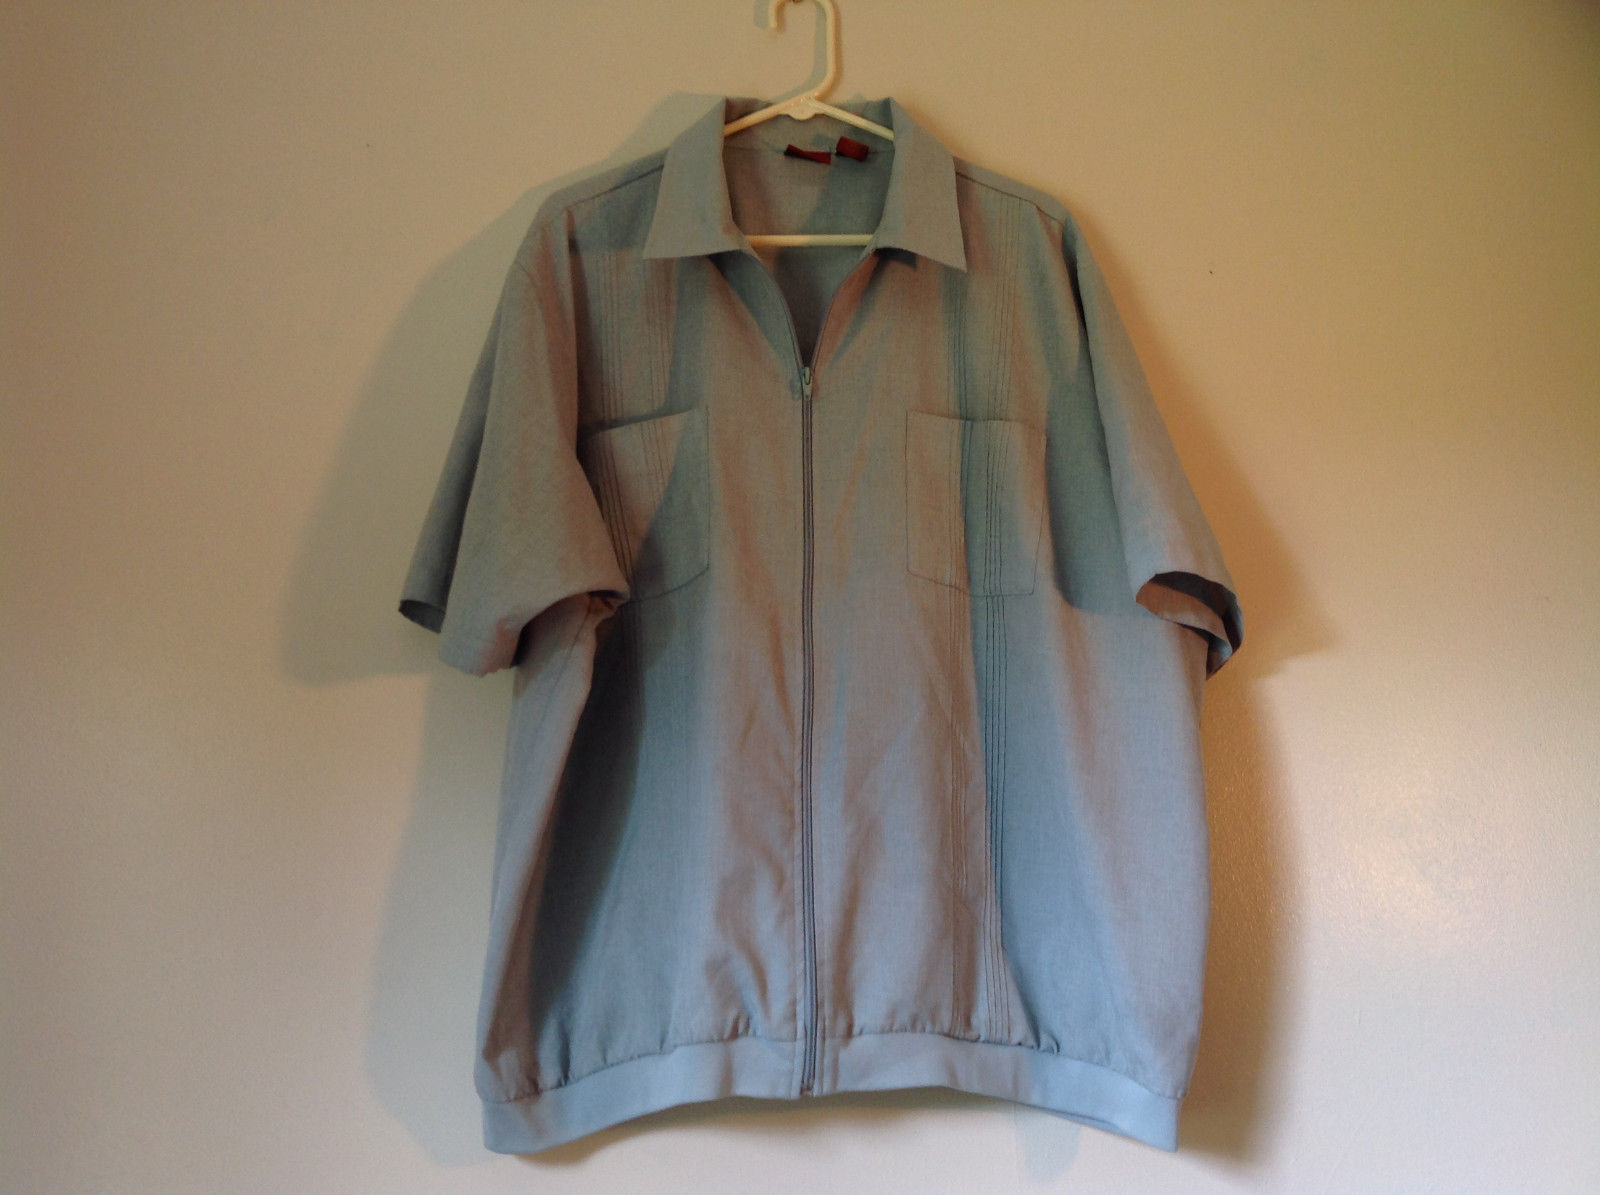 Lions Den Blue Light Gray Short Sleeve Zipper Closure Casual Shirt Size XXL